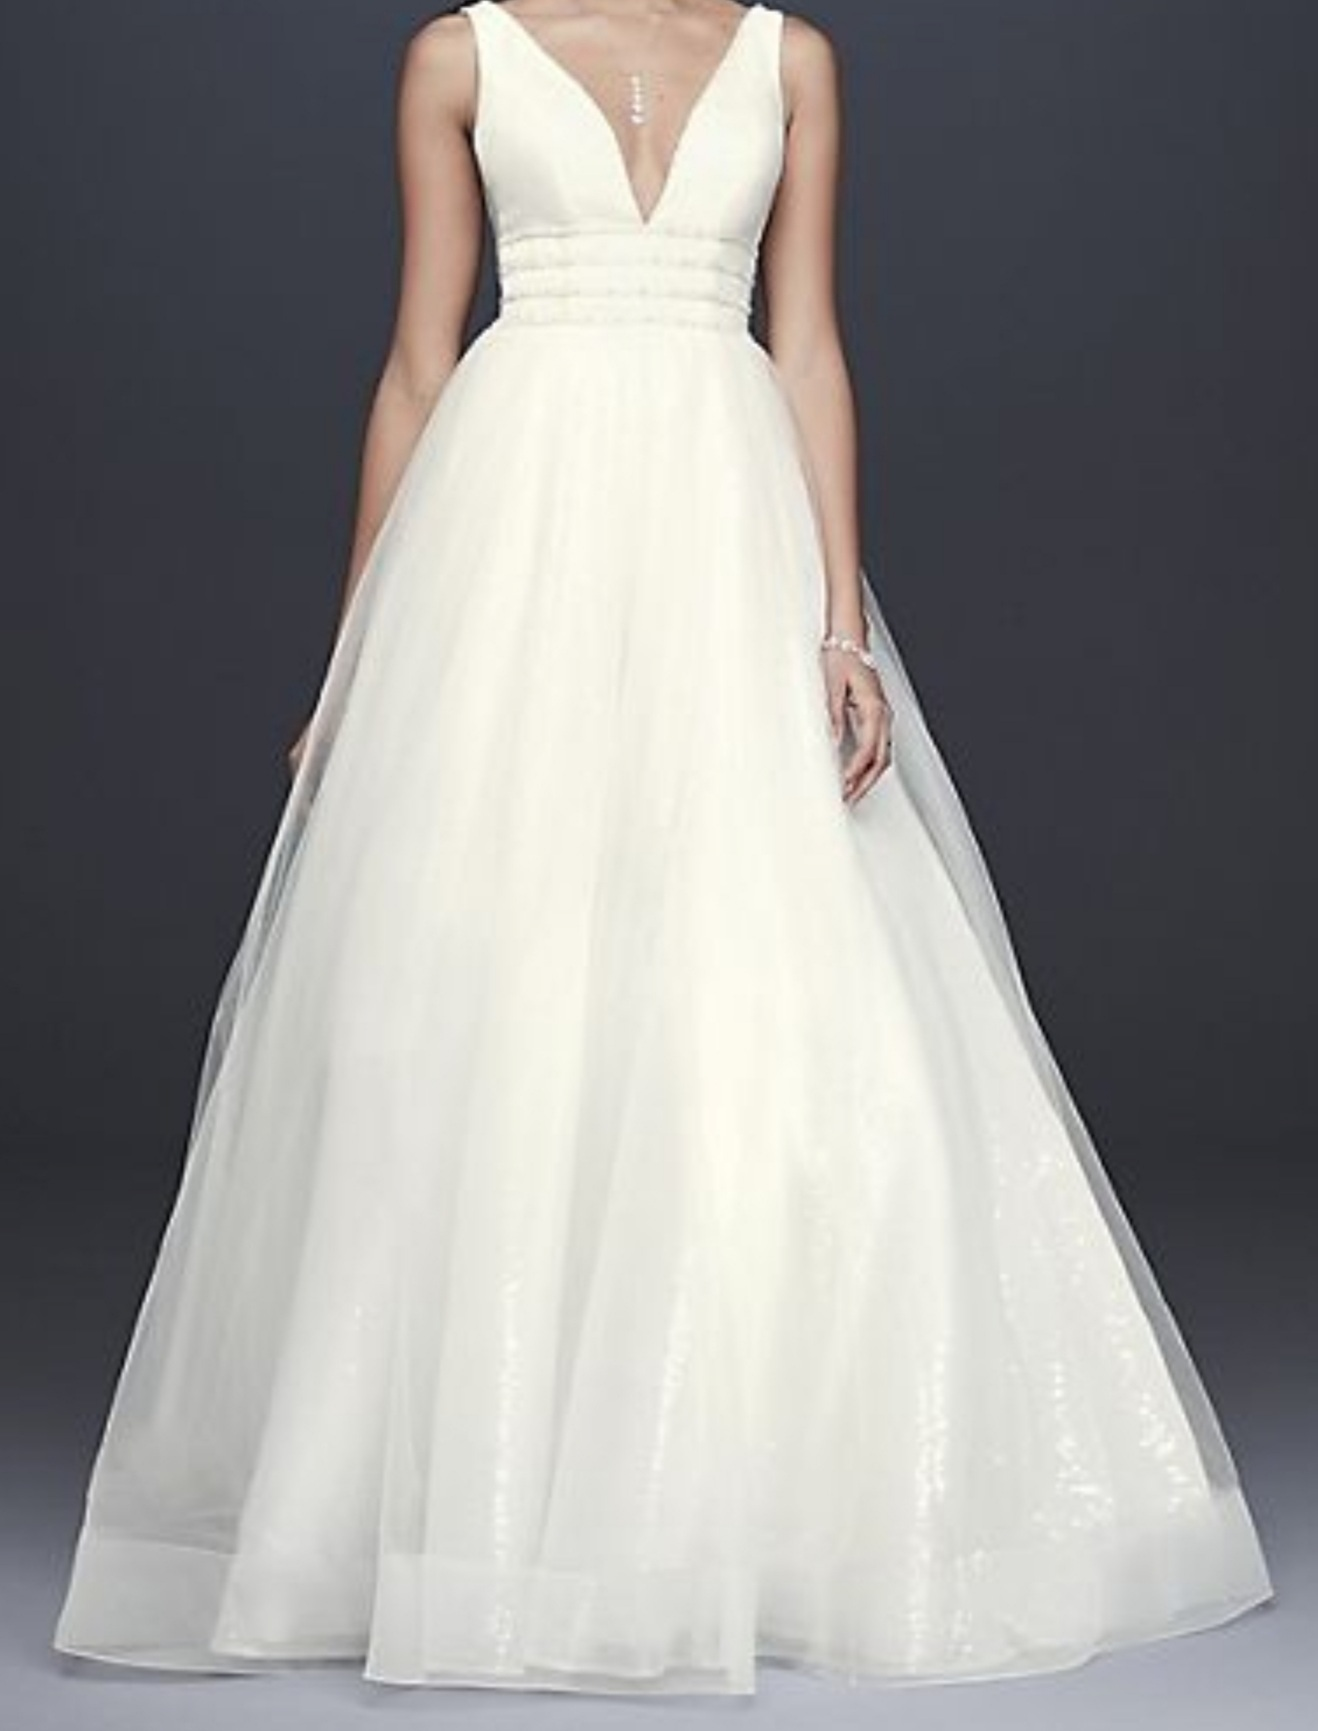 Galina Signature - SV821 - size 14 - $875 - (13% OFF)